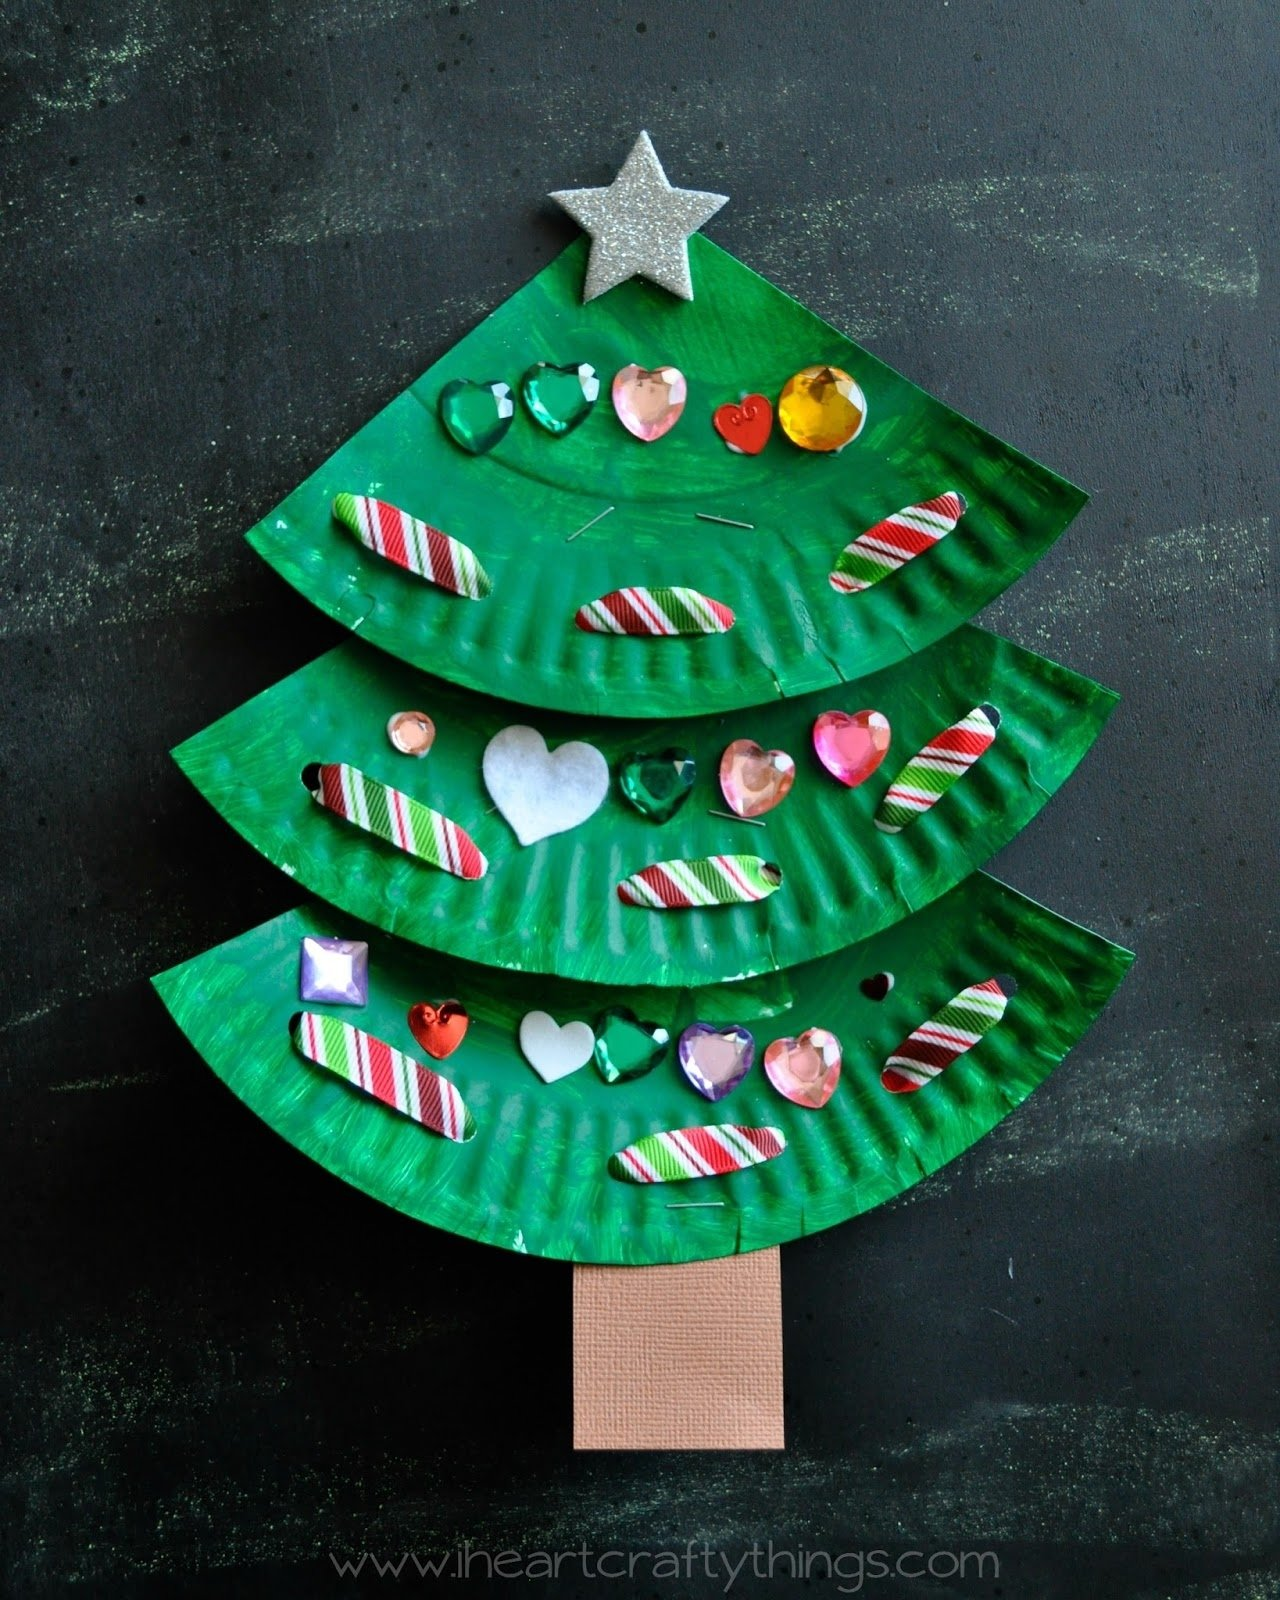 10 Nice Christmas Craft Ideas For Toddlers 12 days of christmas crafts for kids blissfully domestic